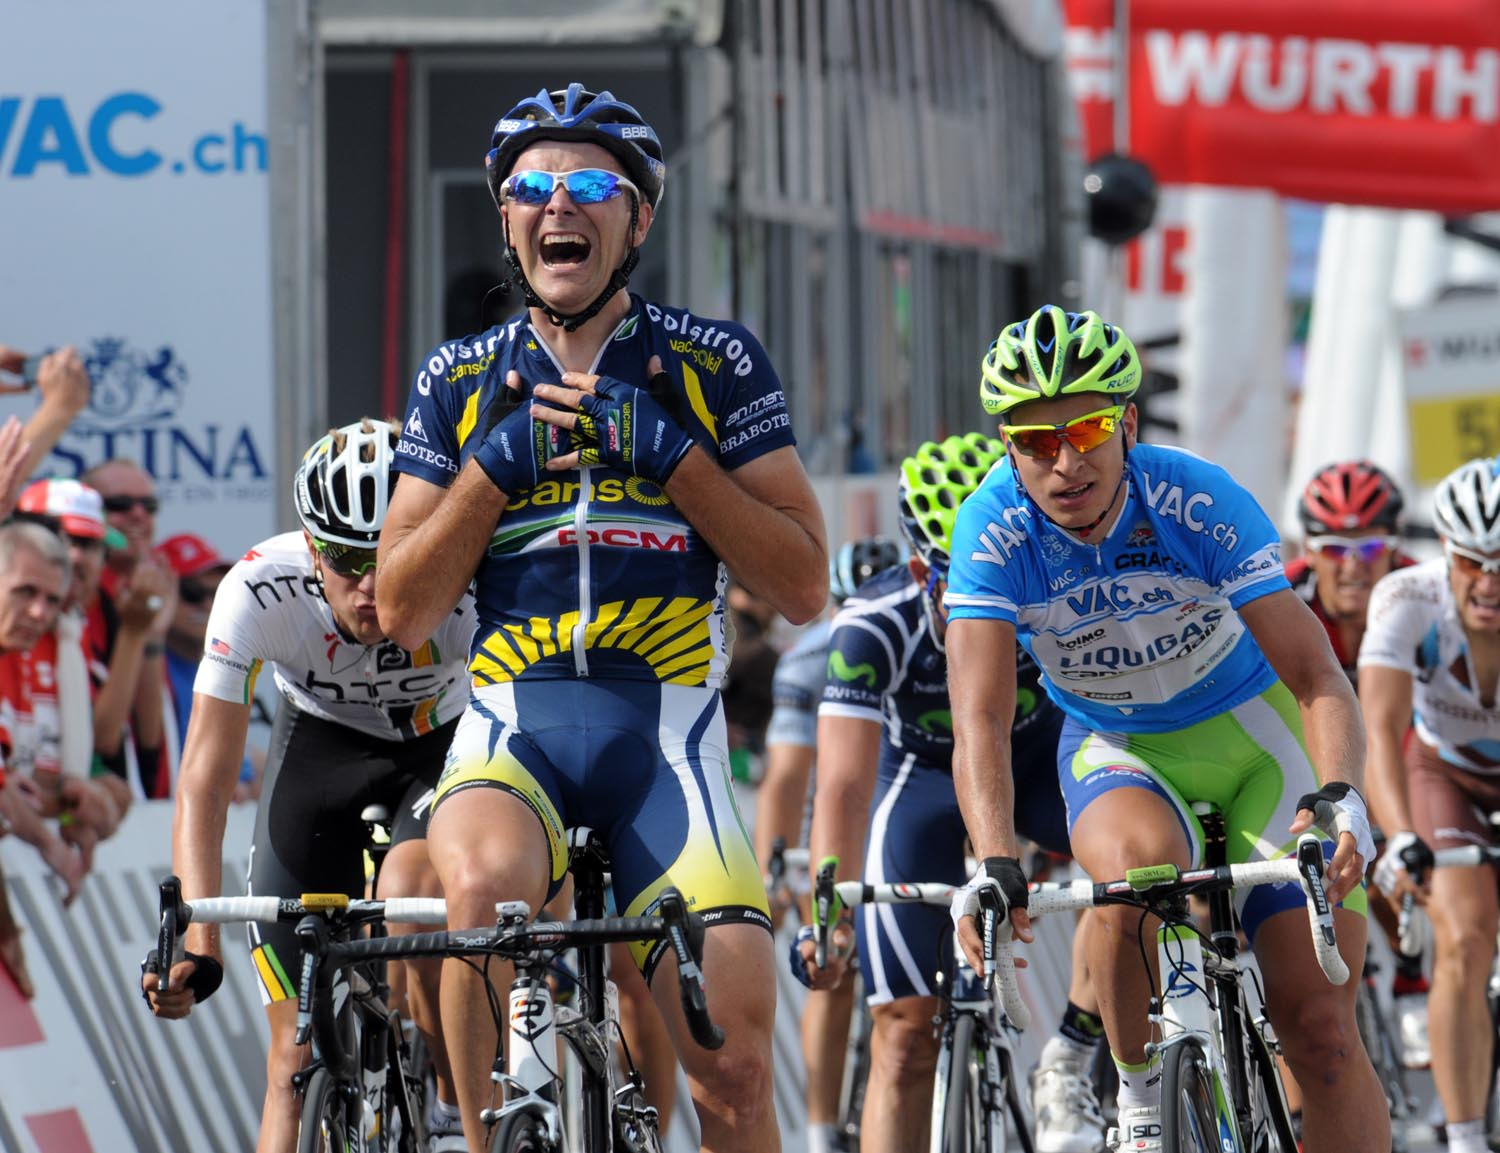 Borut Bozic wins, Tour de Suisse 2011, stage five